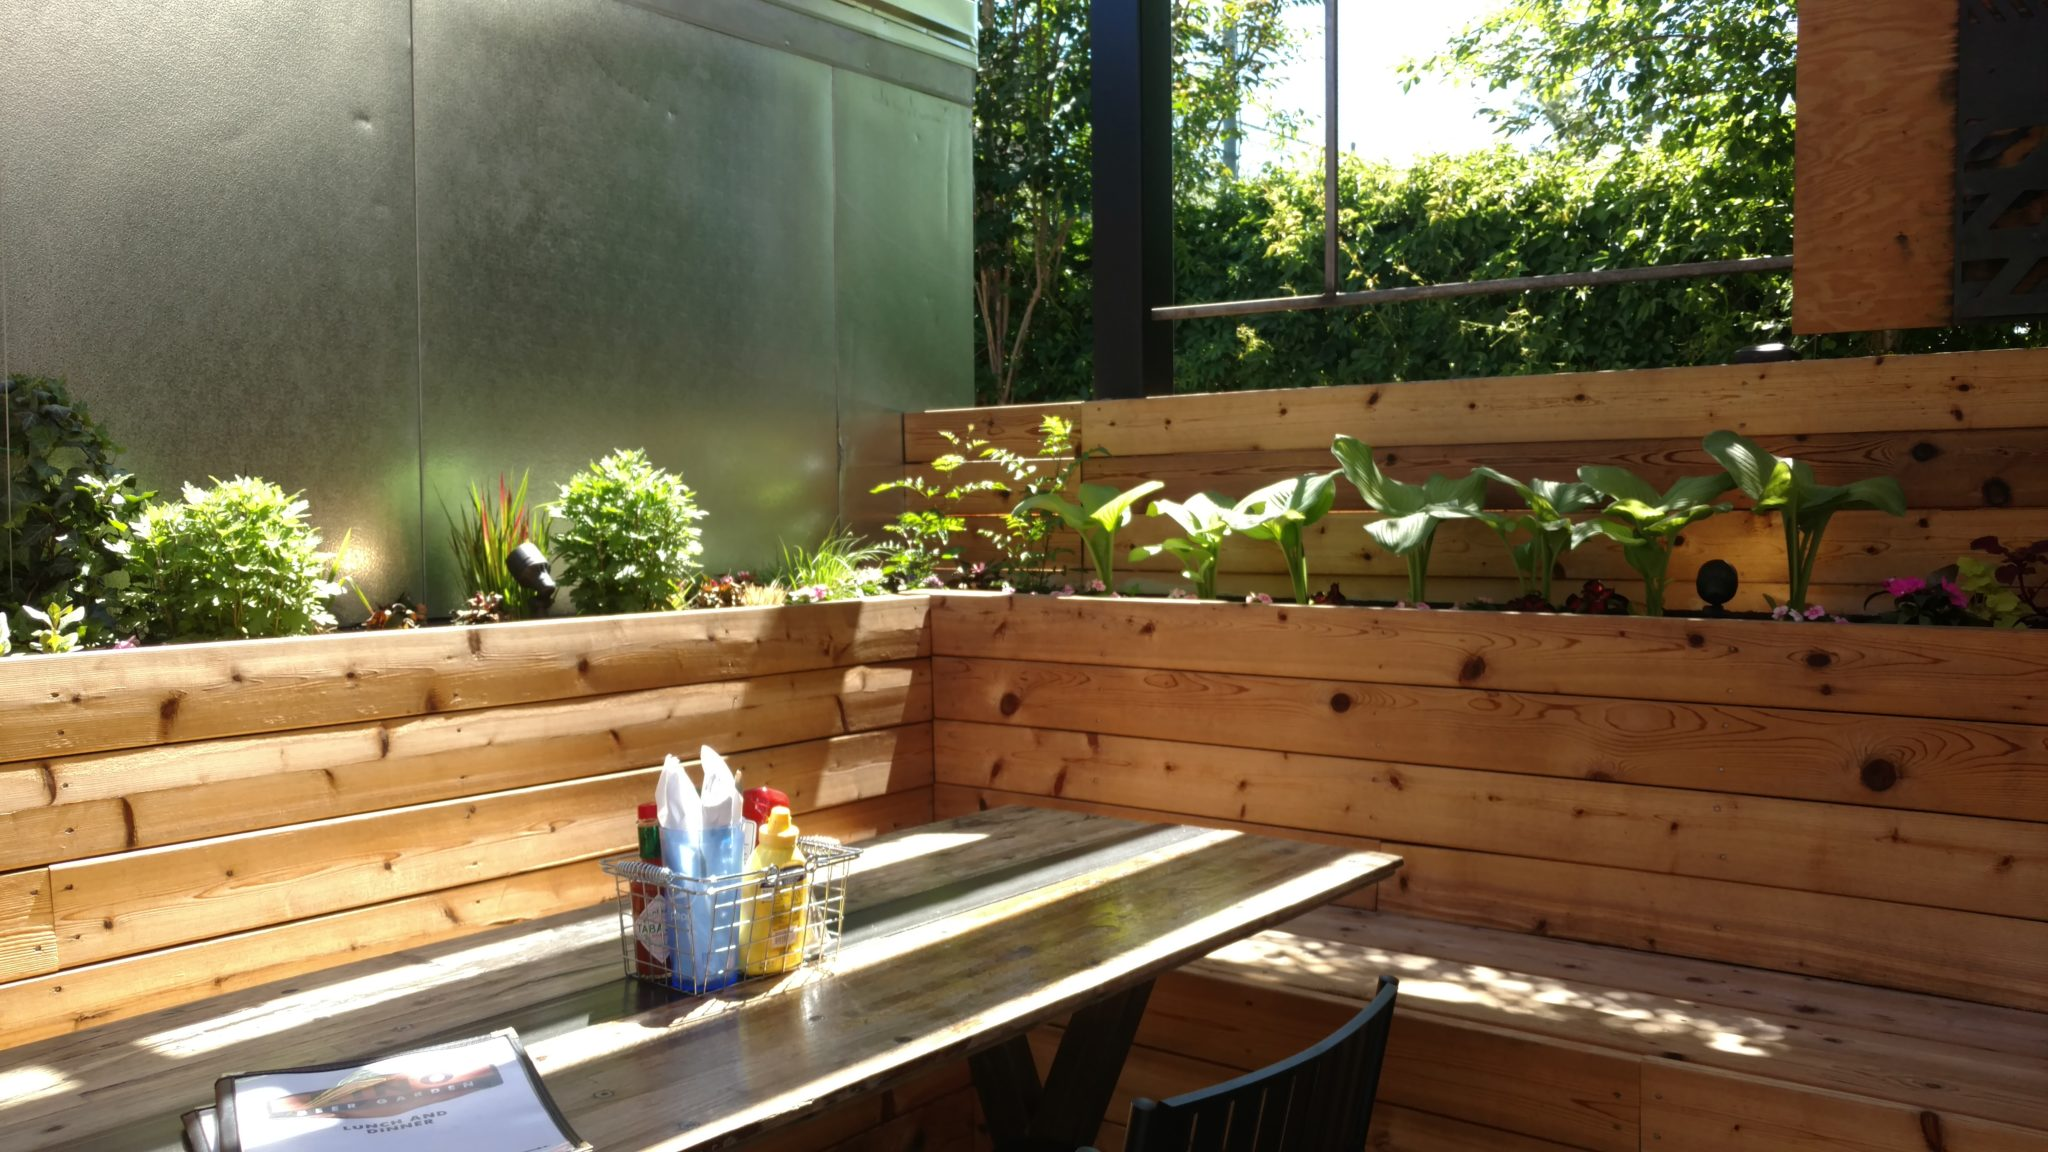 Raised Planters in Beer Garden